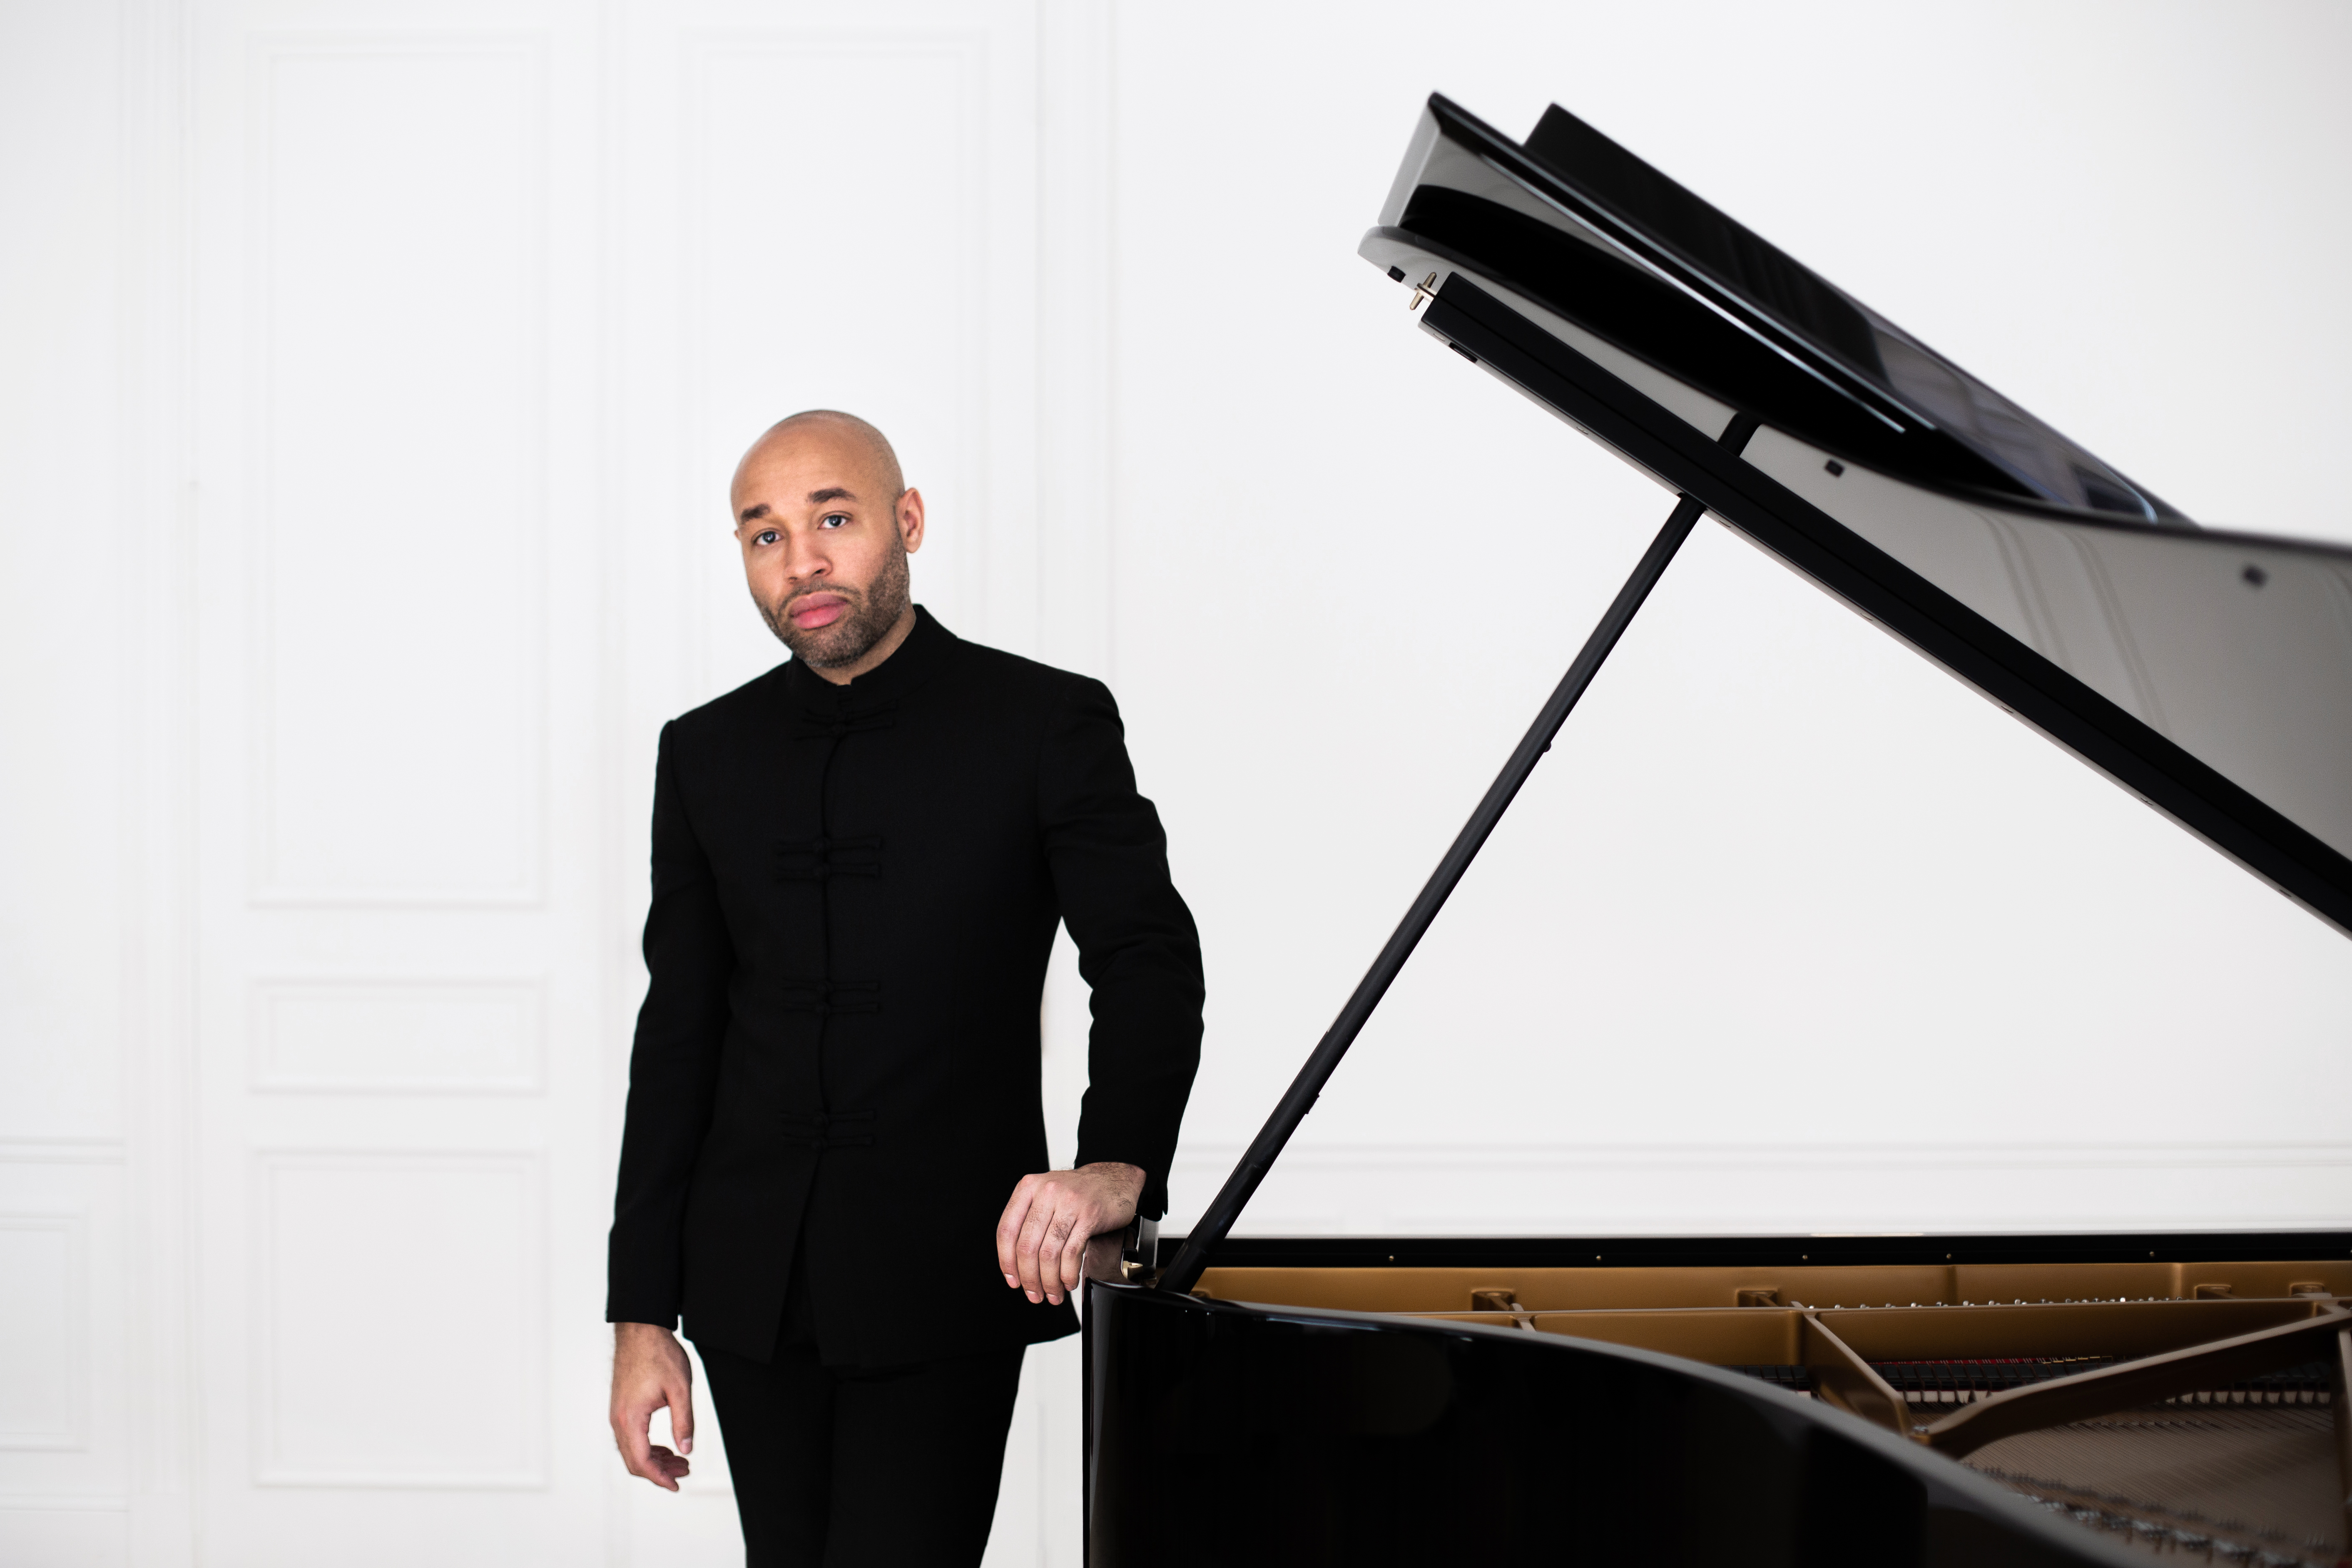 Aaron Diehl wears an all black suit standing next to a black steinway with open lid